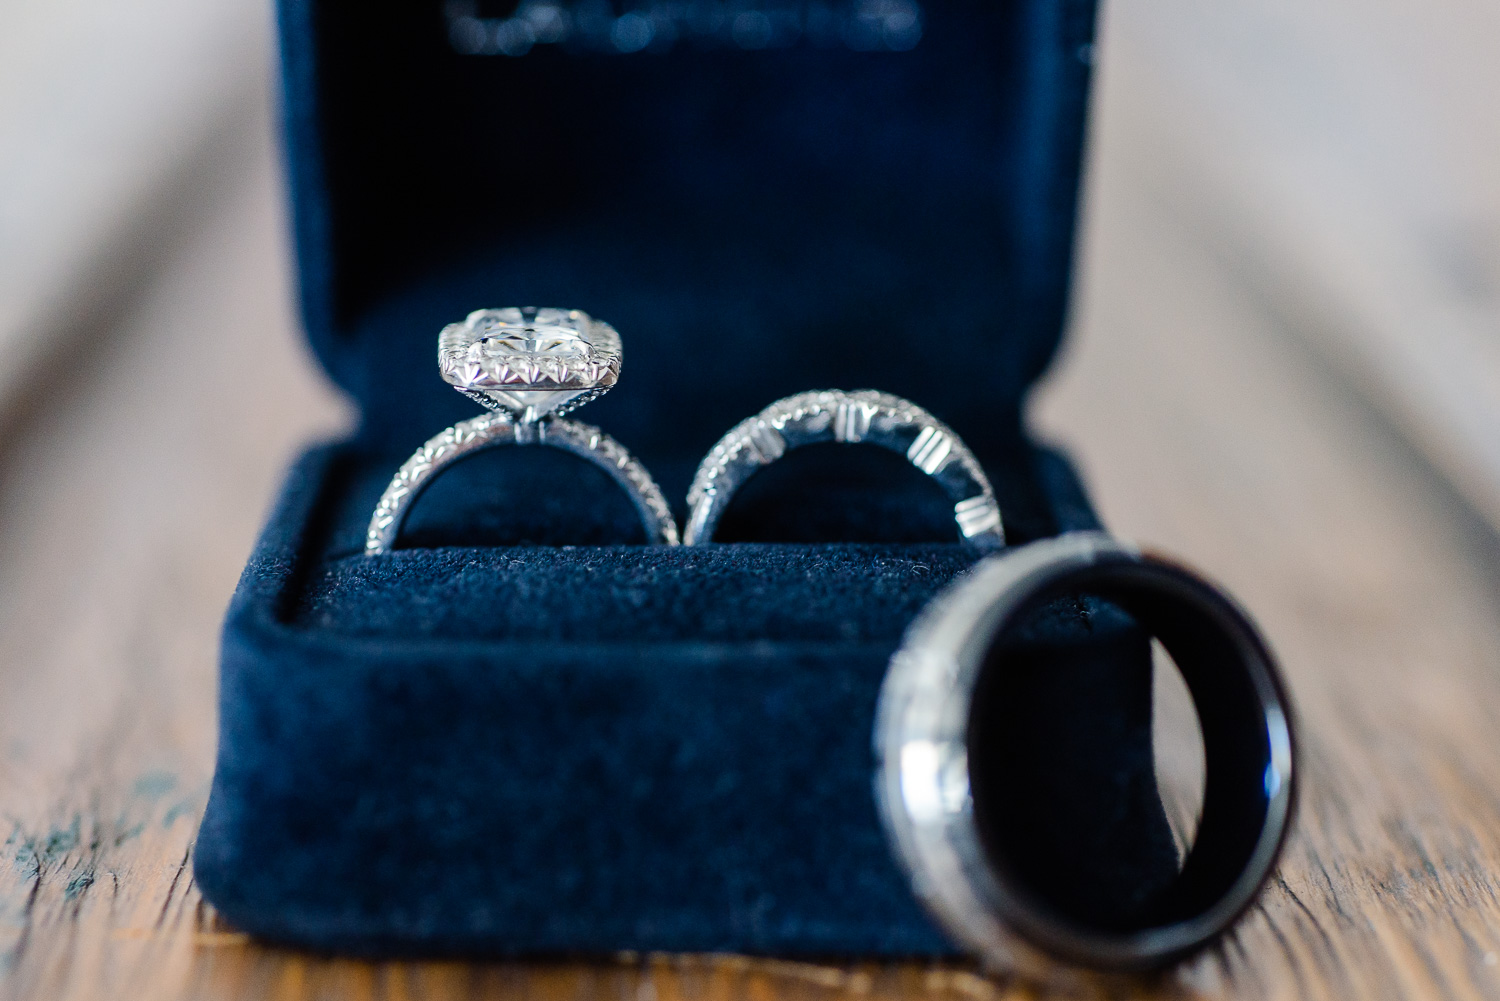 Detail of wedding rings captured for talented destination wedding photographer GVphotographer